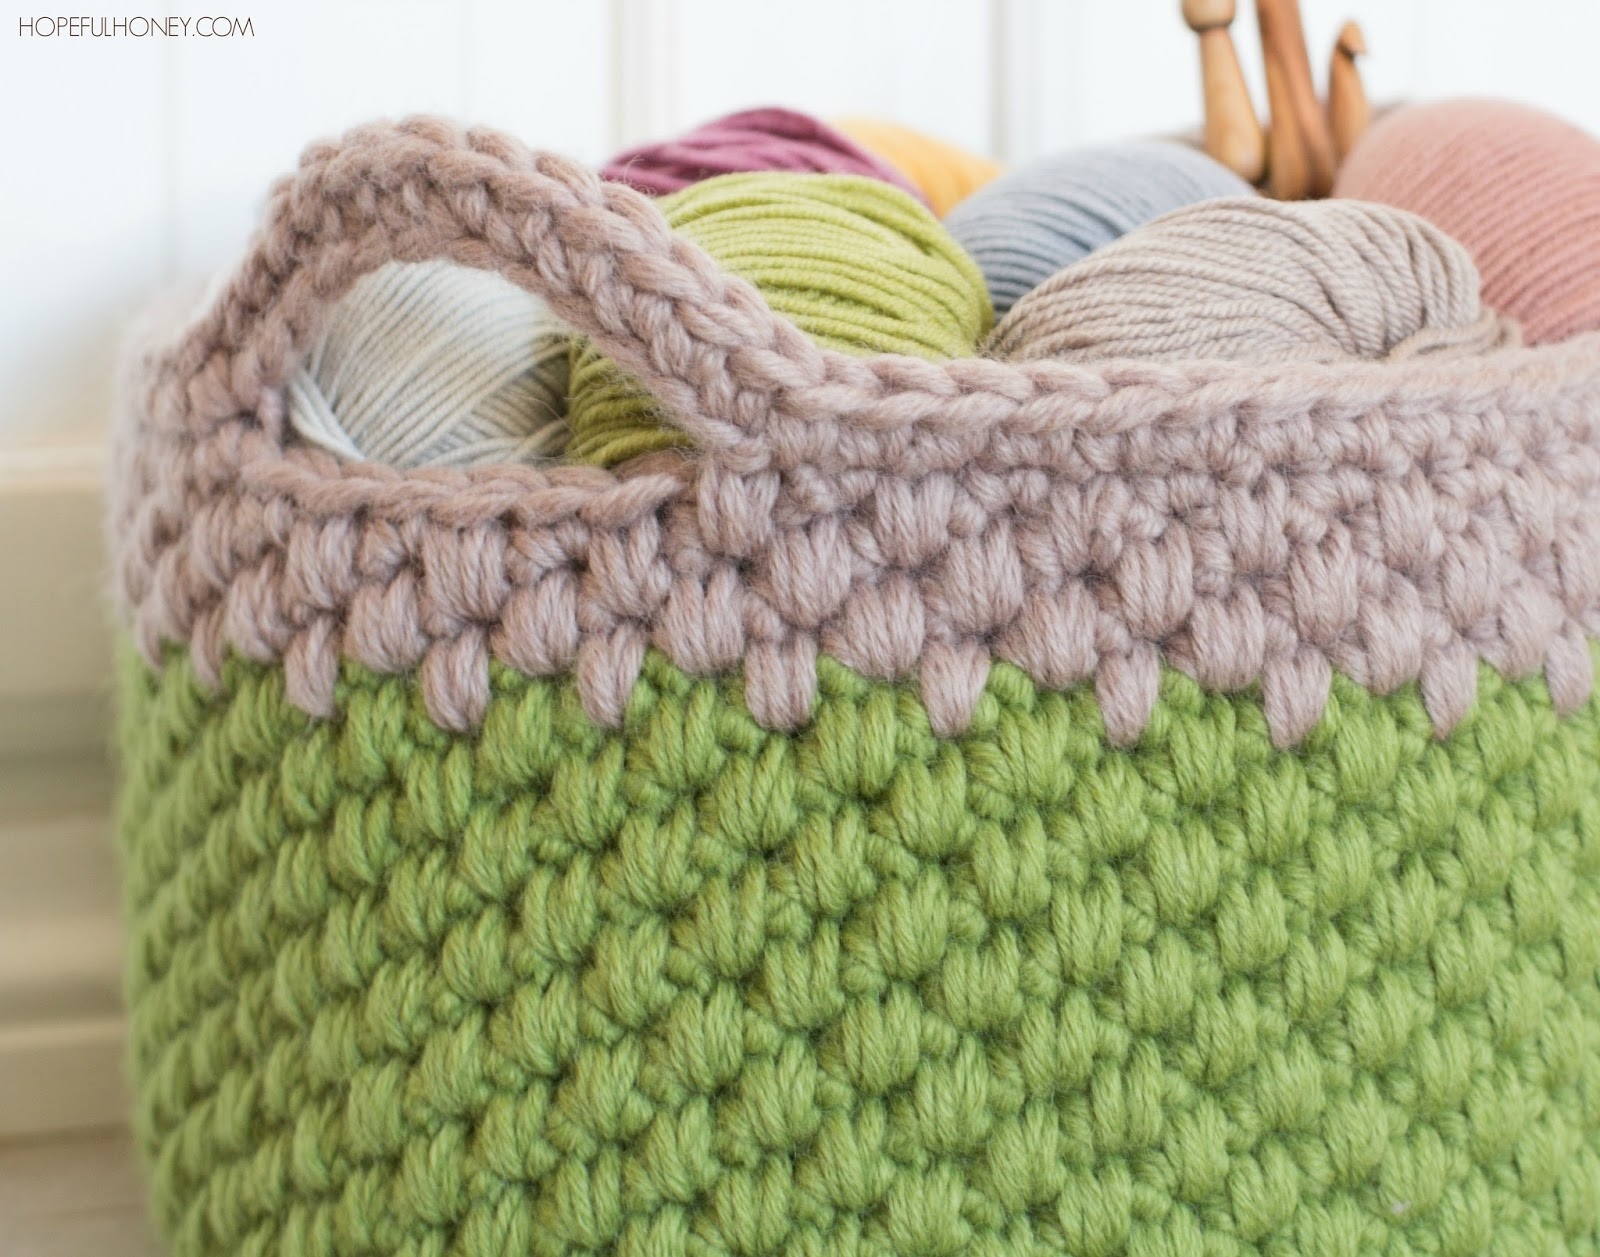 Crochet Patterns Chunky Yarn : ... Crochet, Create: Woodland Moss Chunky Basket - Crochet Pattern